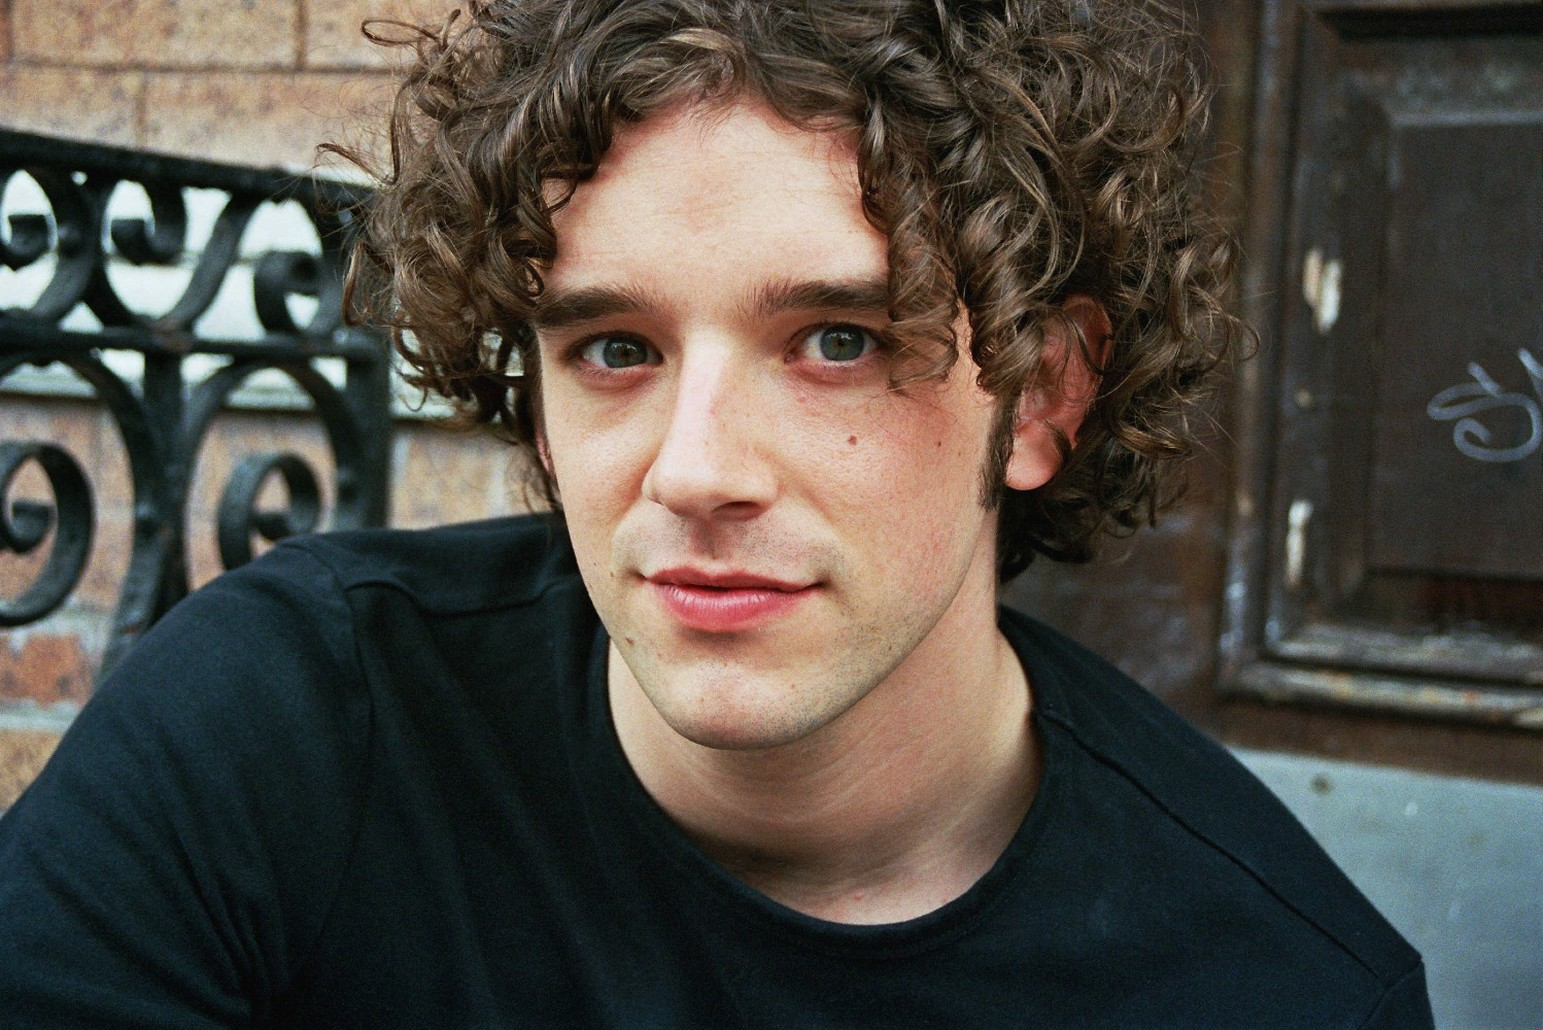 Men's Curly Hair styles picture